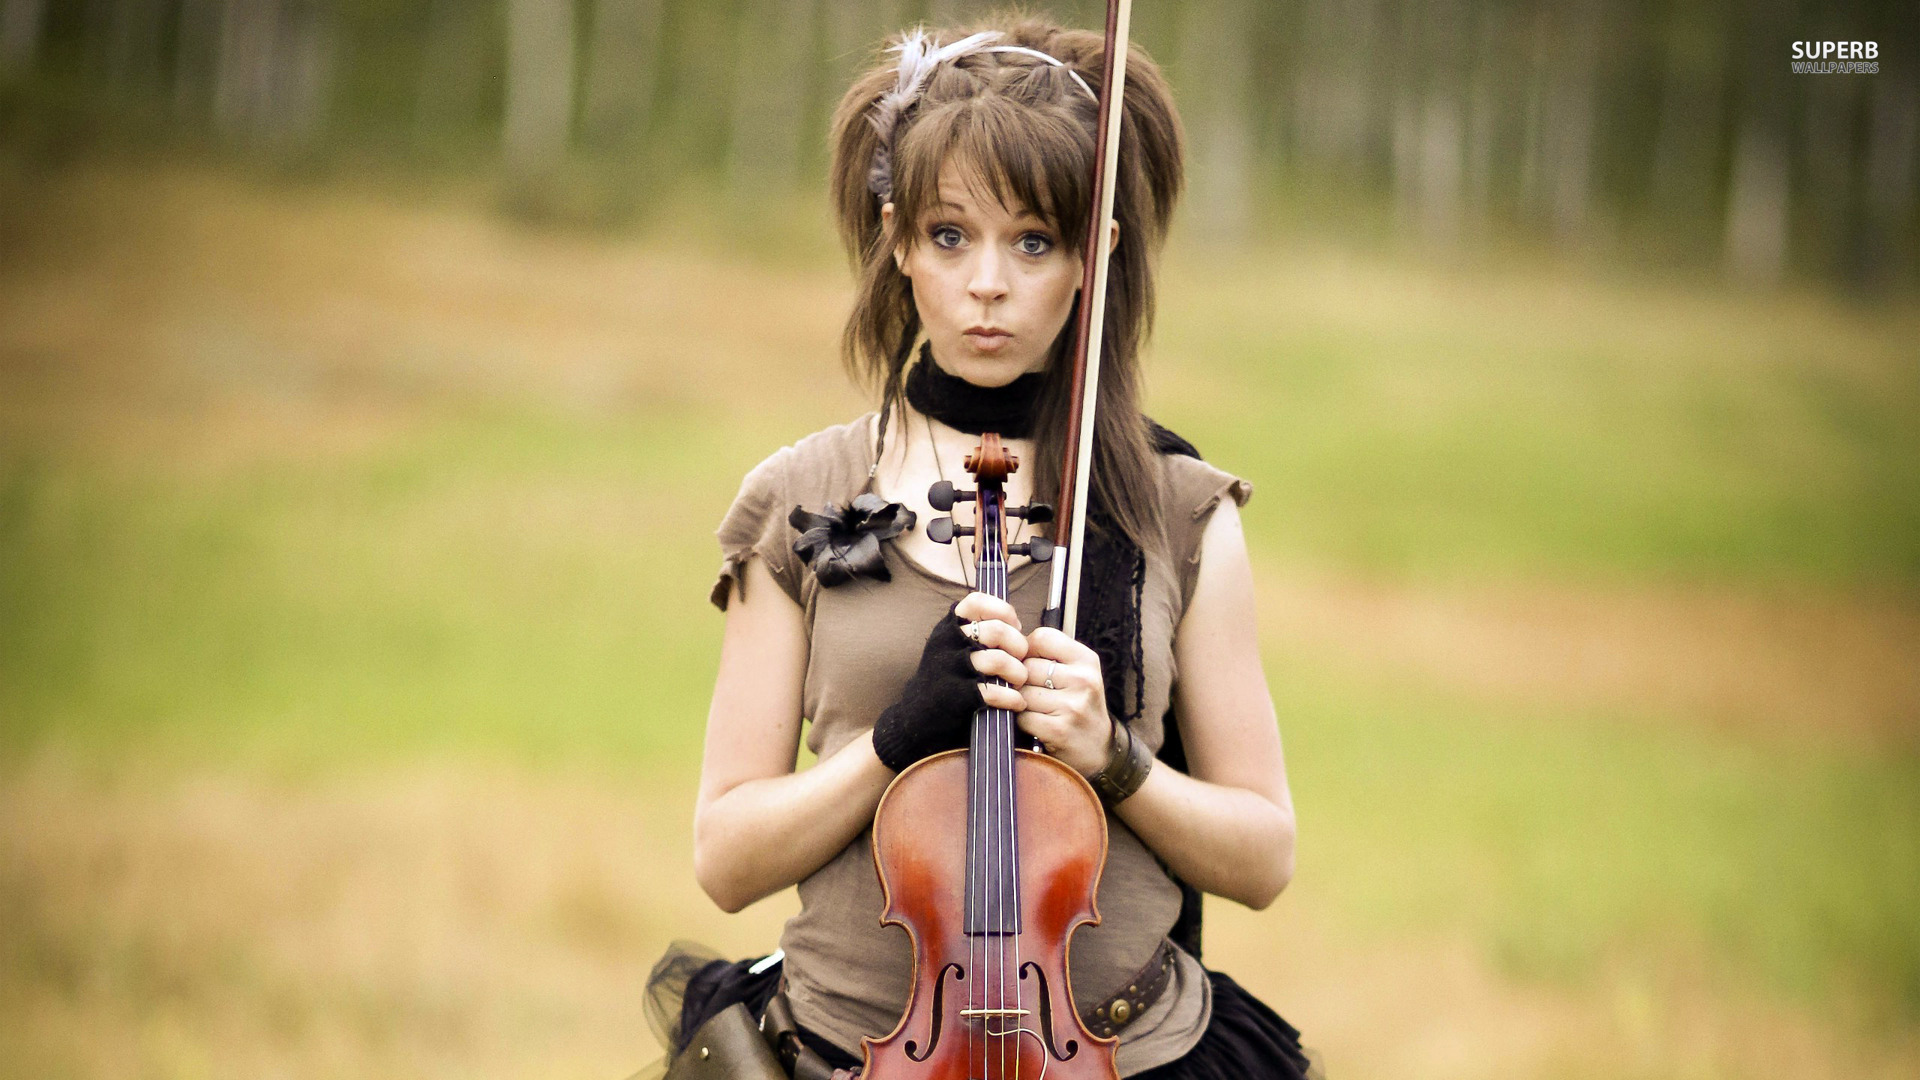 Lindsey Stirling wallpaper 1920x1080